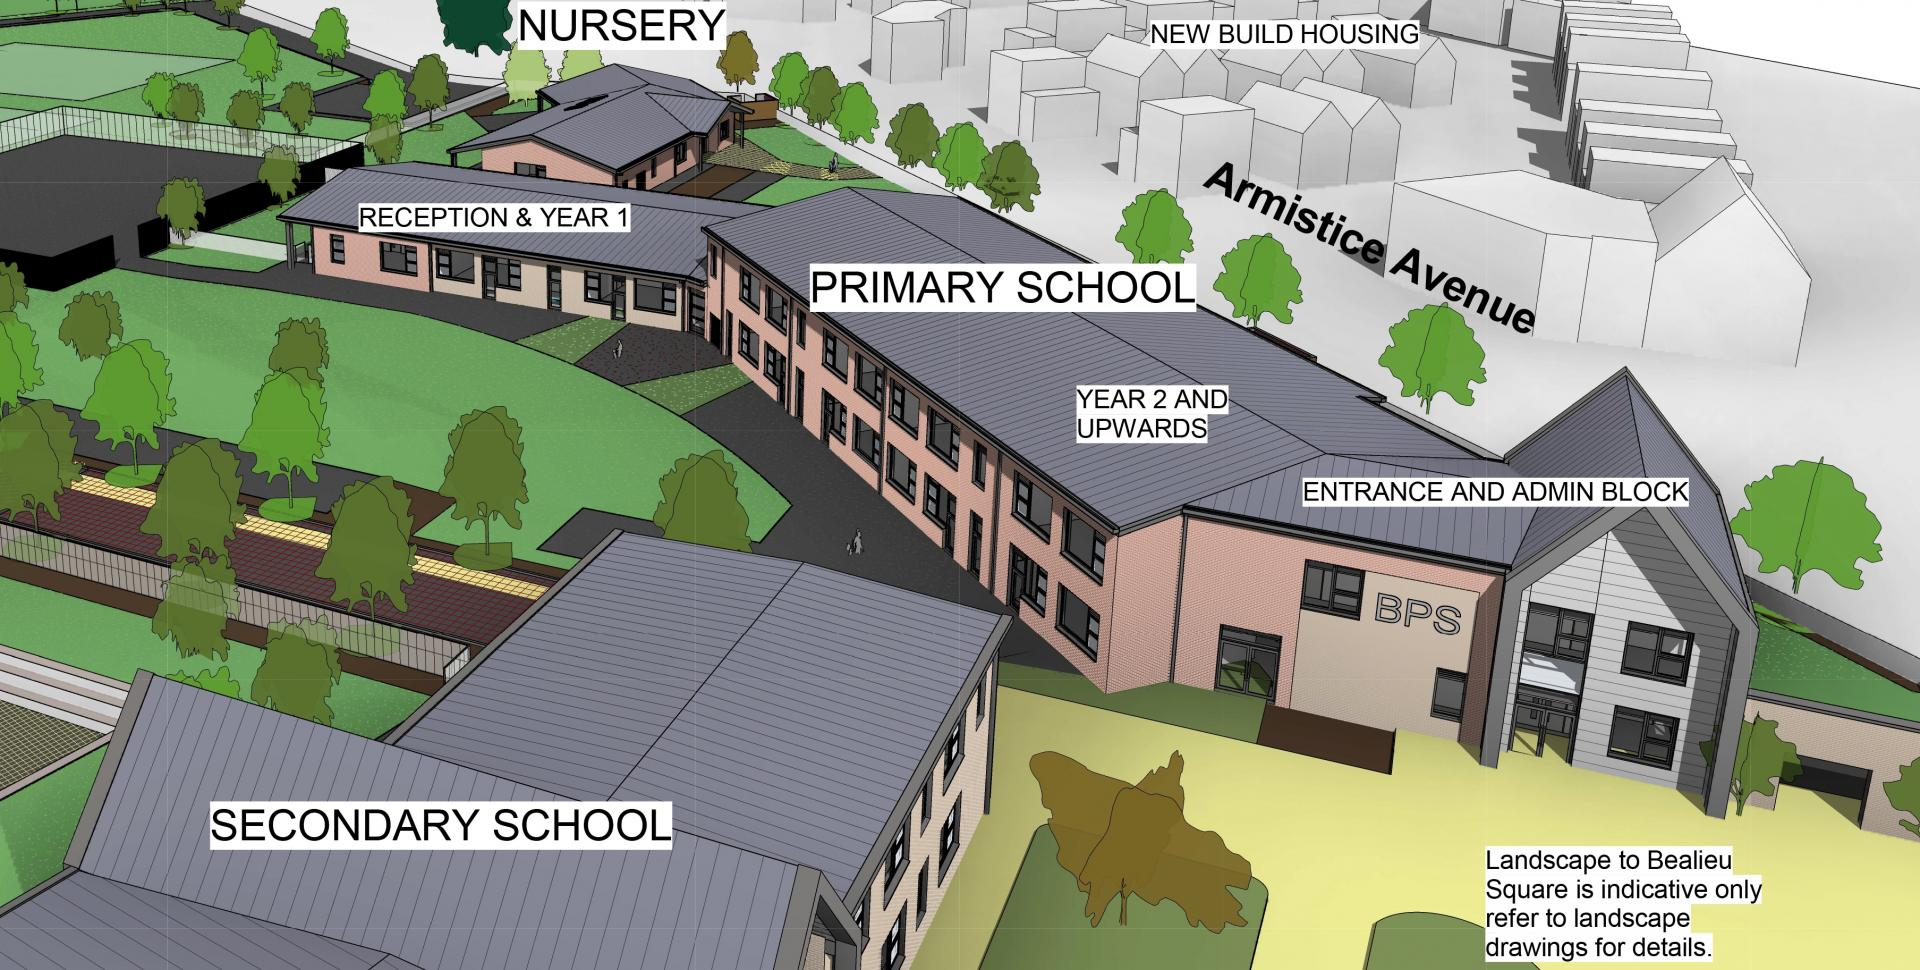 Plans for new 1200 place secondary school given green light as essexs first all through school moves a step closer